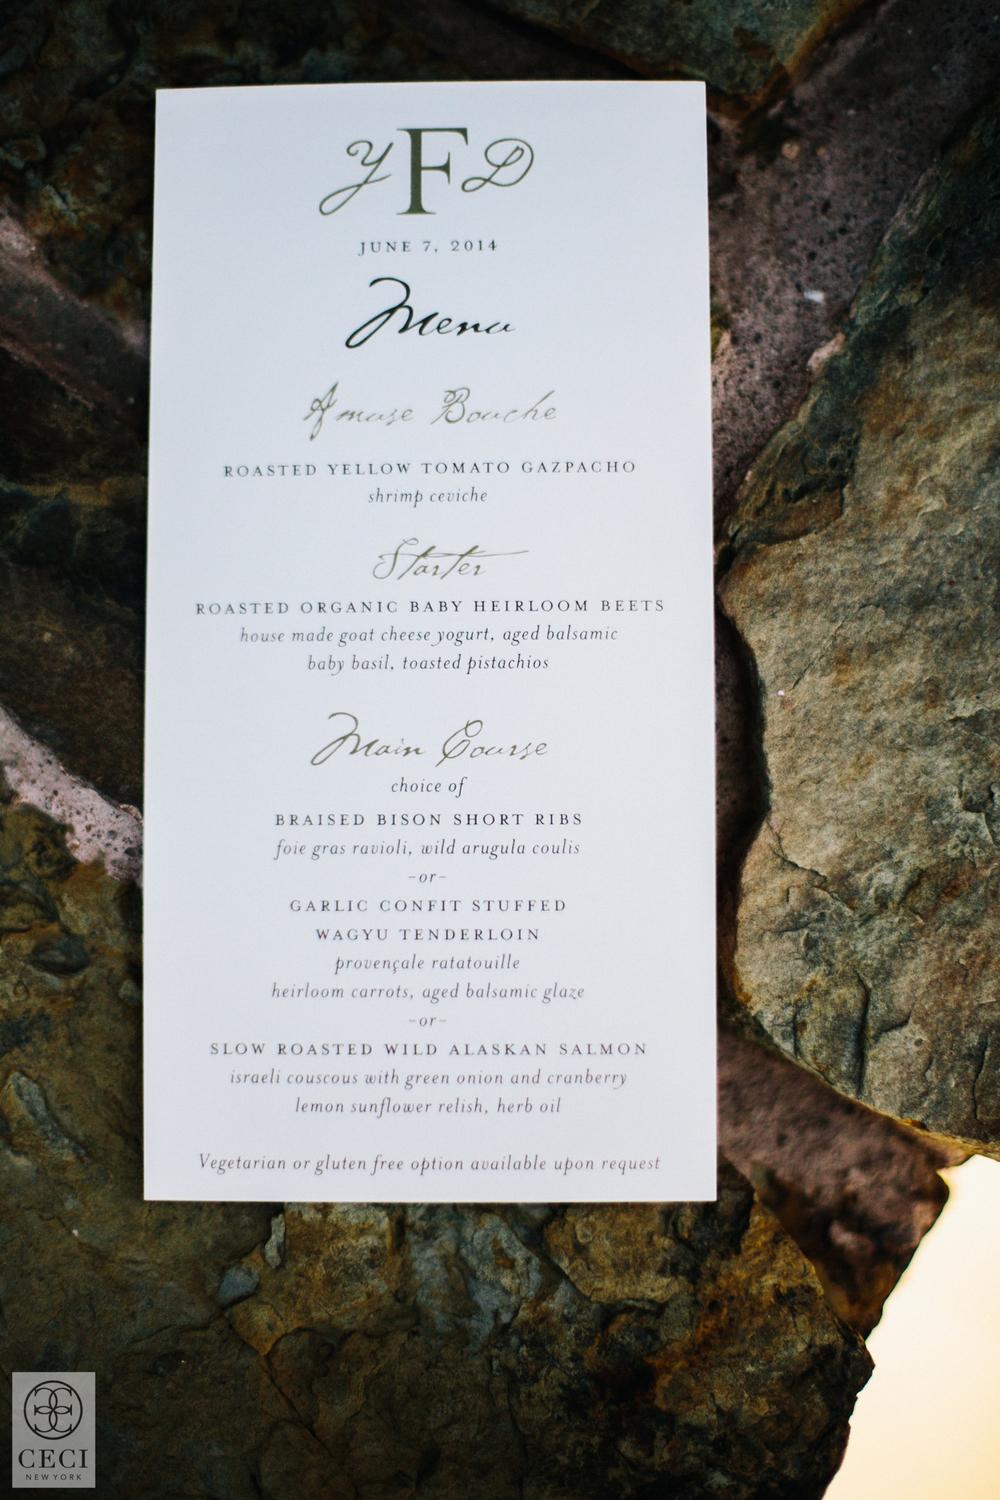 Ceci_New_York_Lyndsey_Hamilton_Events_Invitations_Wedding_Amangani_Elegance_Gold_Foil_Letterpress_Classic_Stamping_Custom_Couture_Personalized-6.jpg